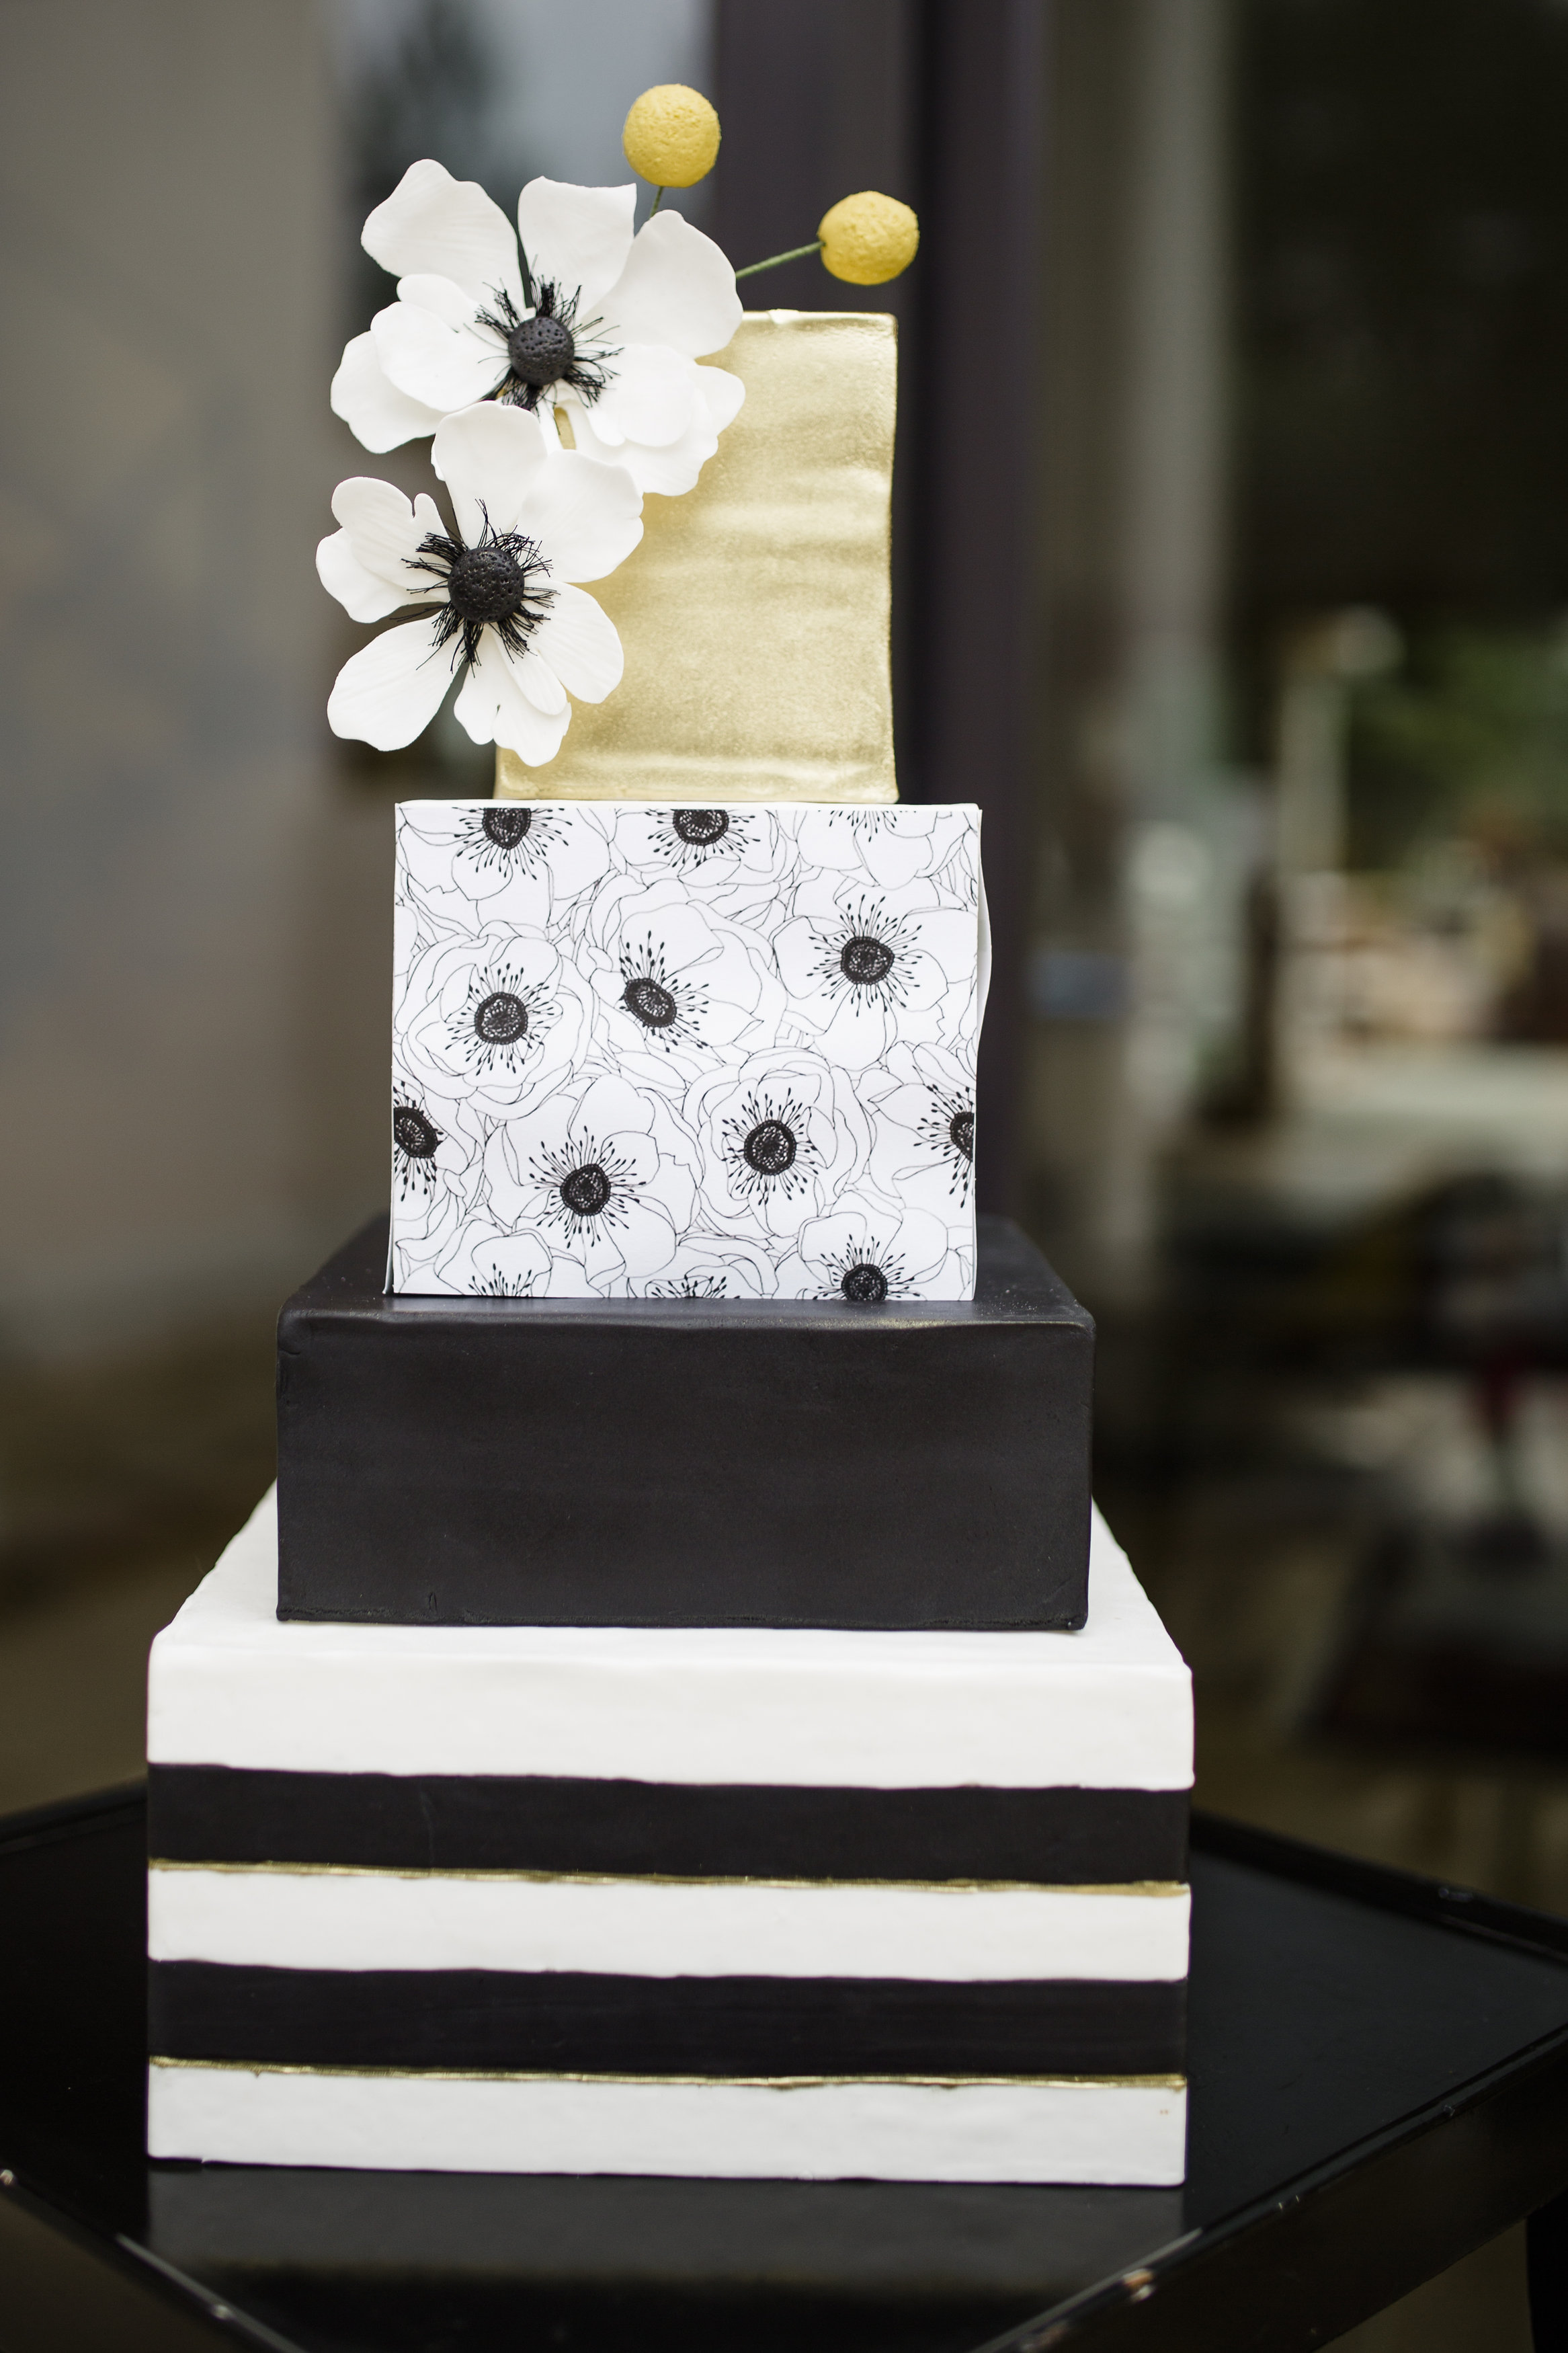 An amazing fourtier square cake featuring black and white